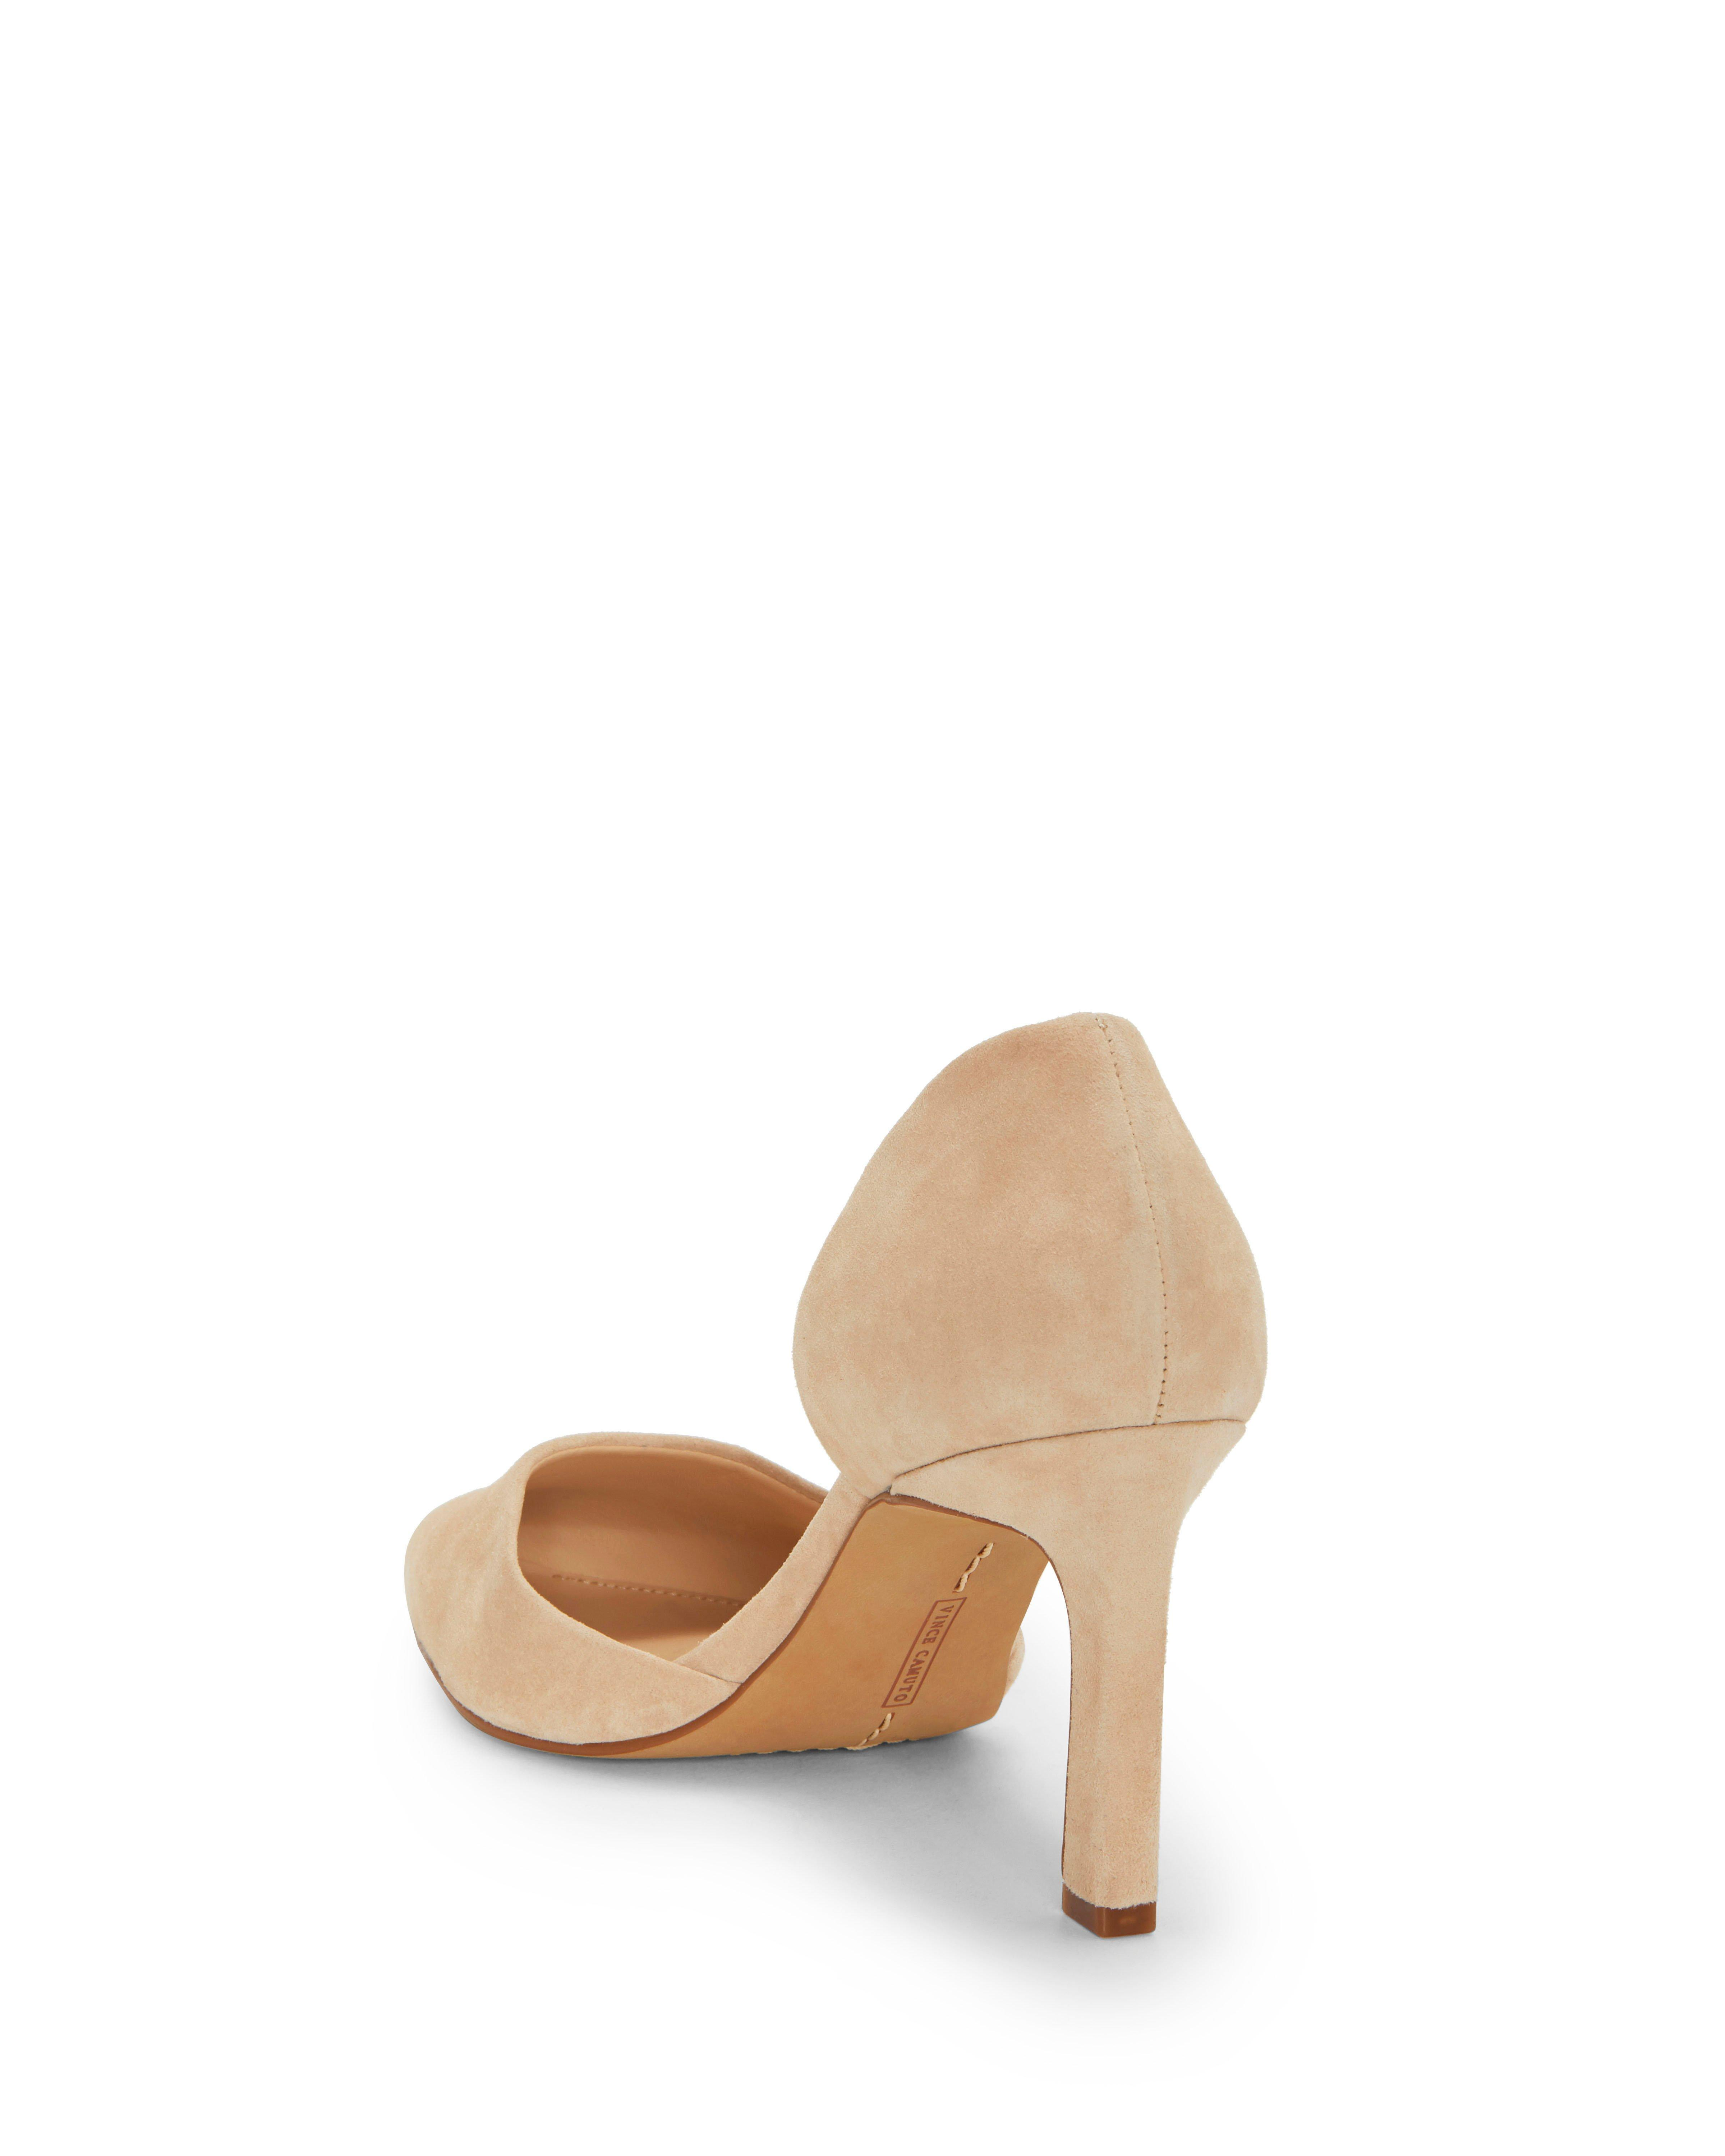 73ffdf10e1d Lyst - Vince Camuto Renny – D orsay Pump in Natural